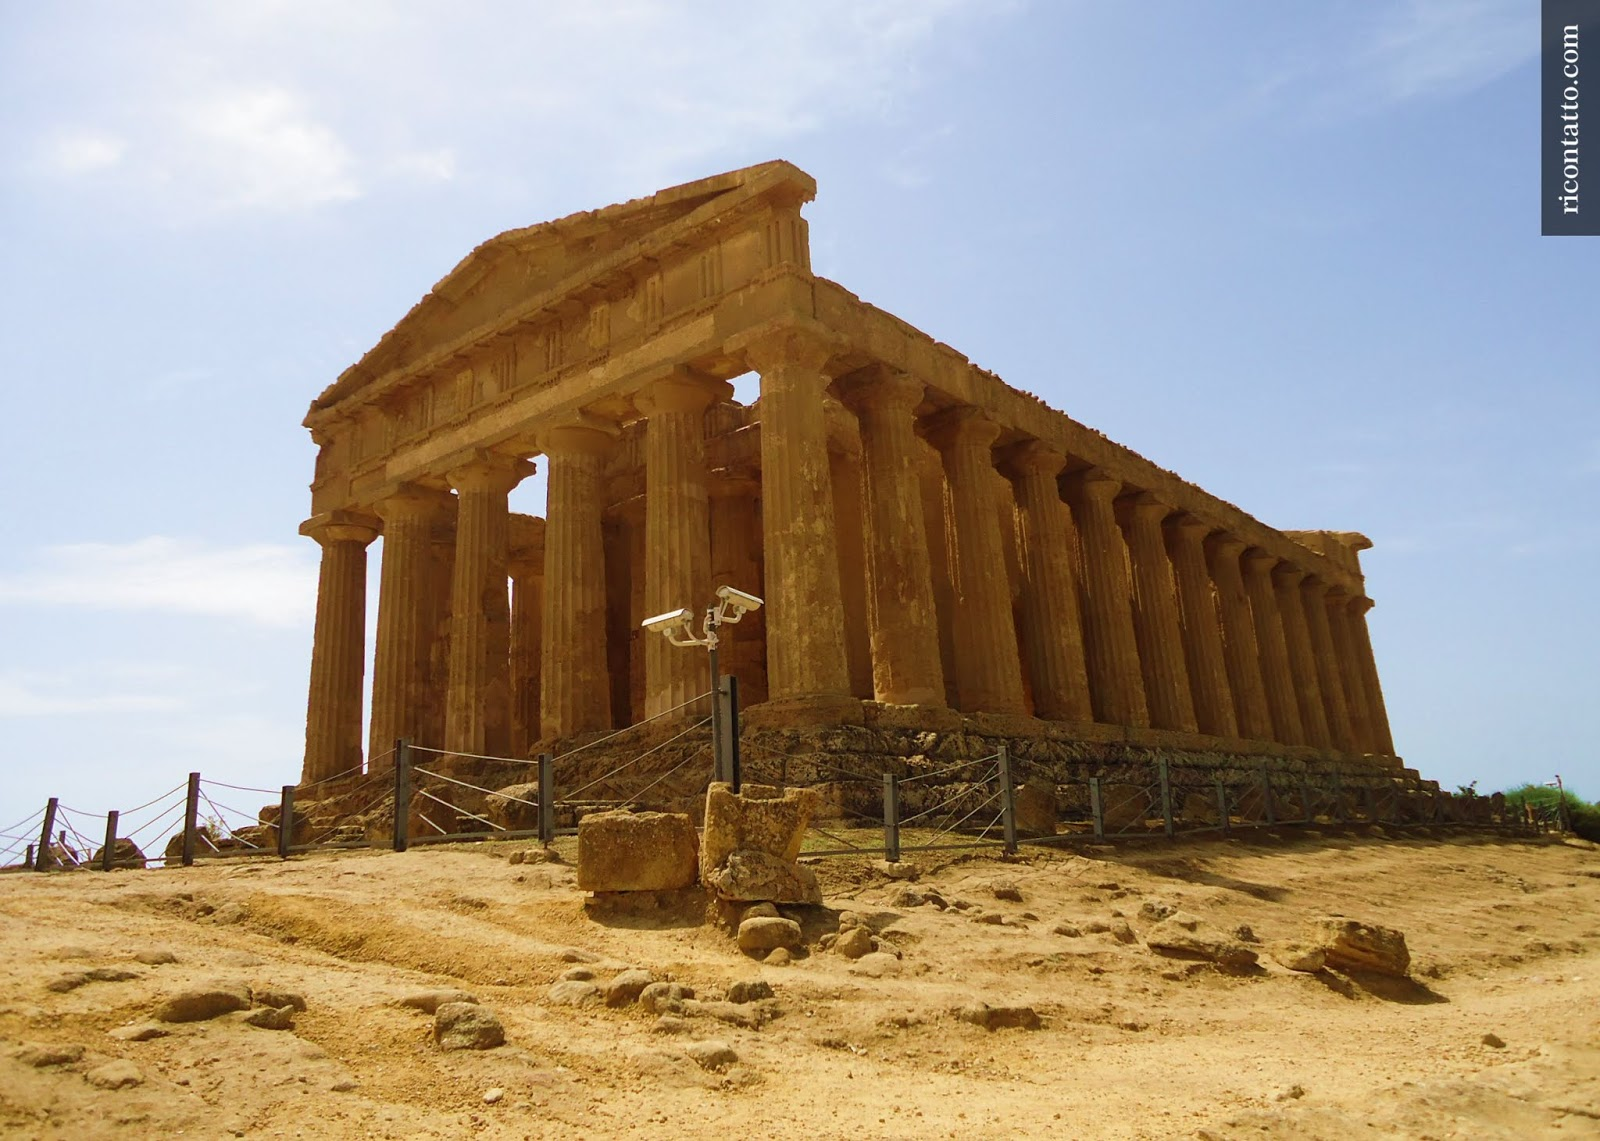 Agrigento, Sicilia, Italy - Photo #02 by Ricontatto.com